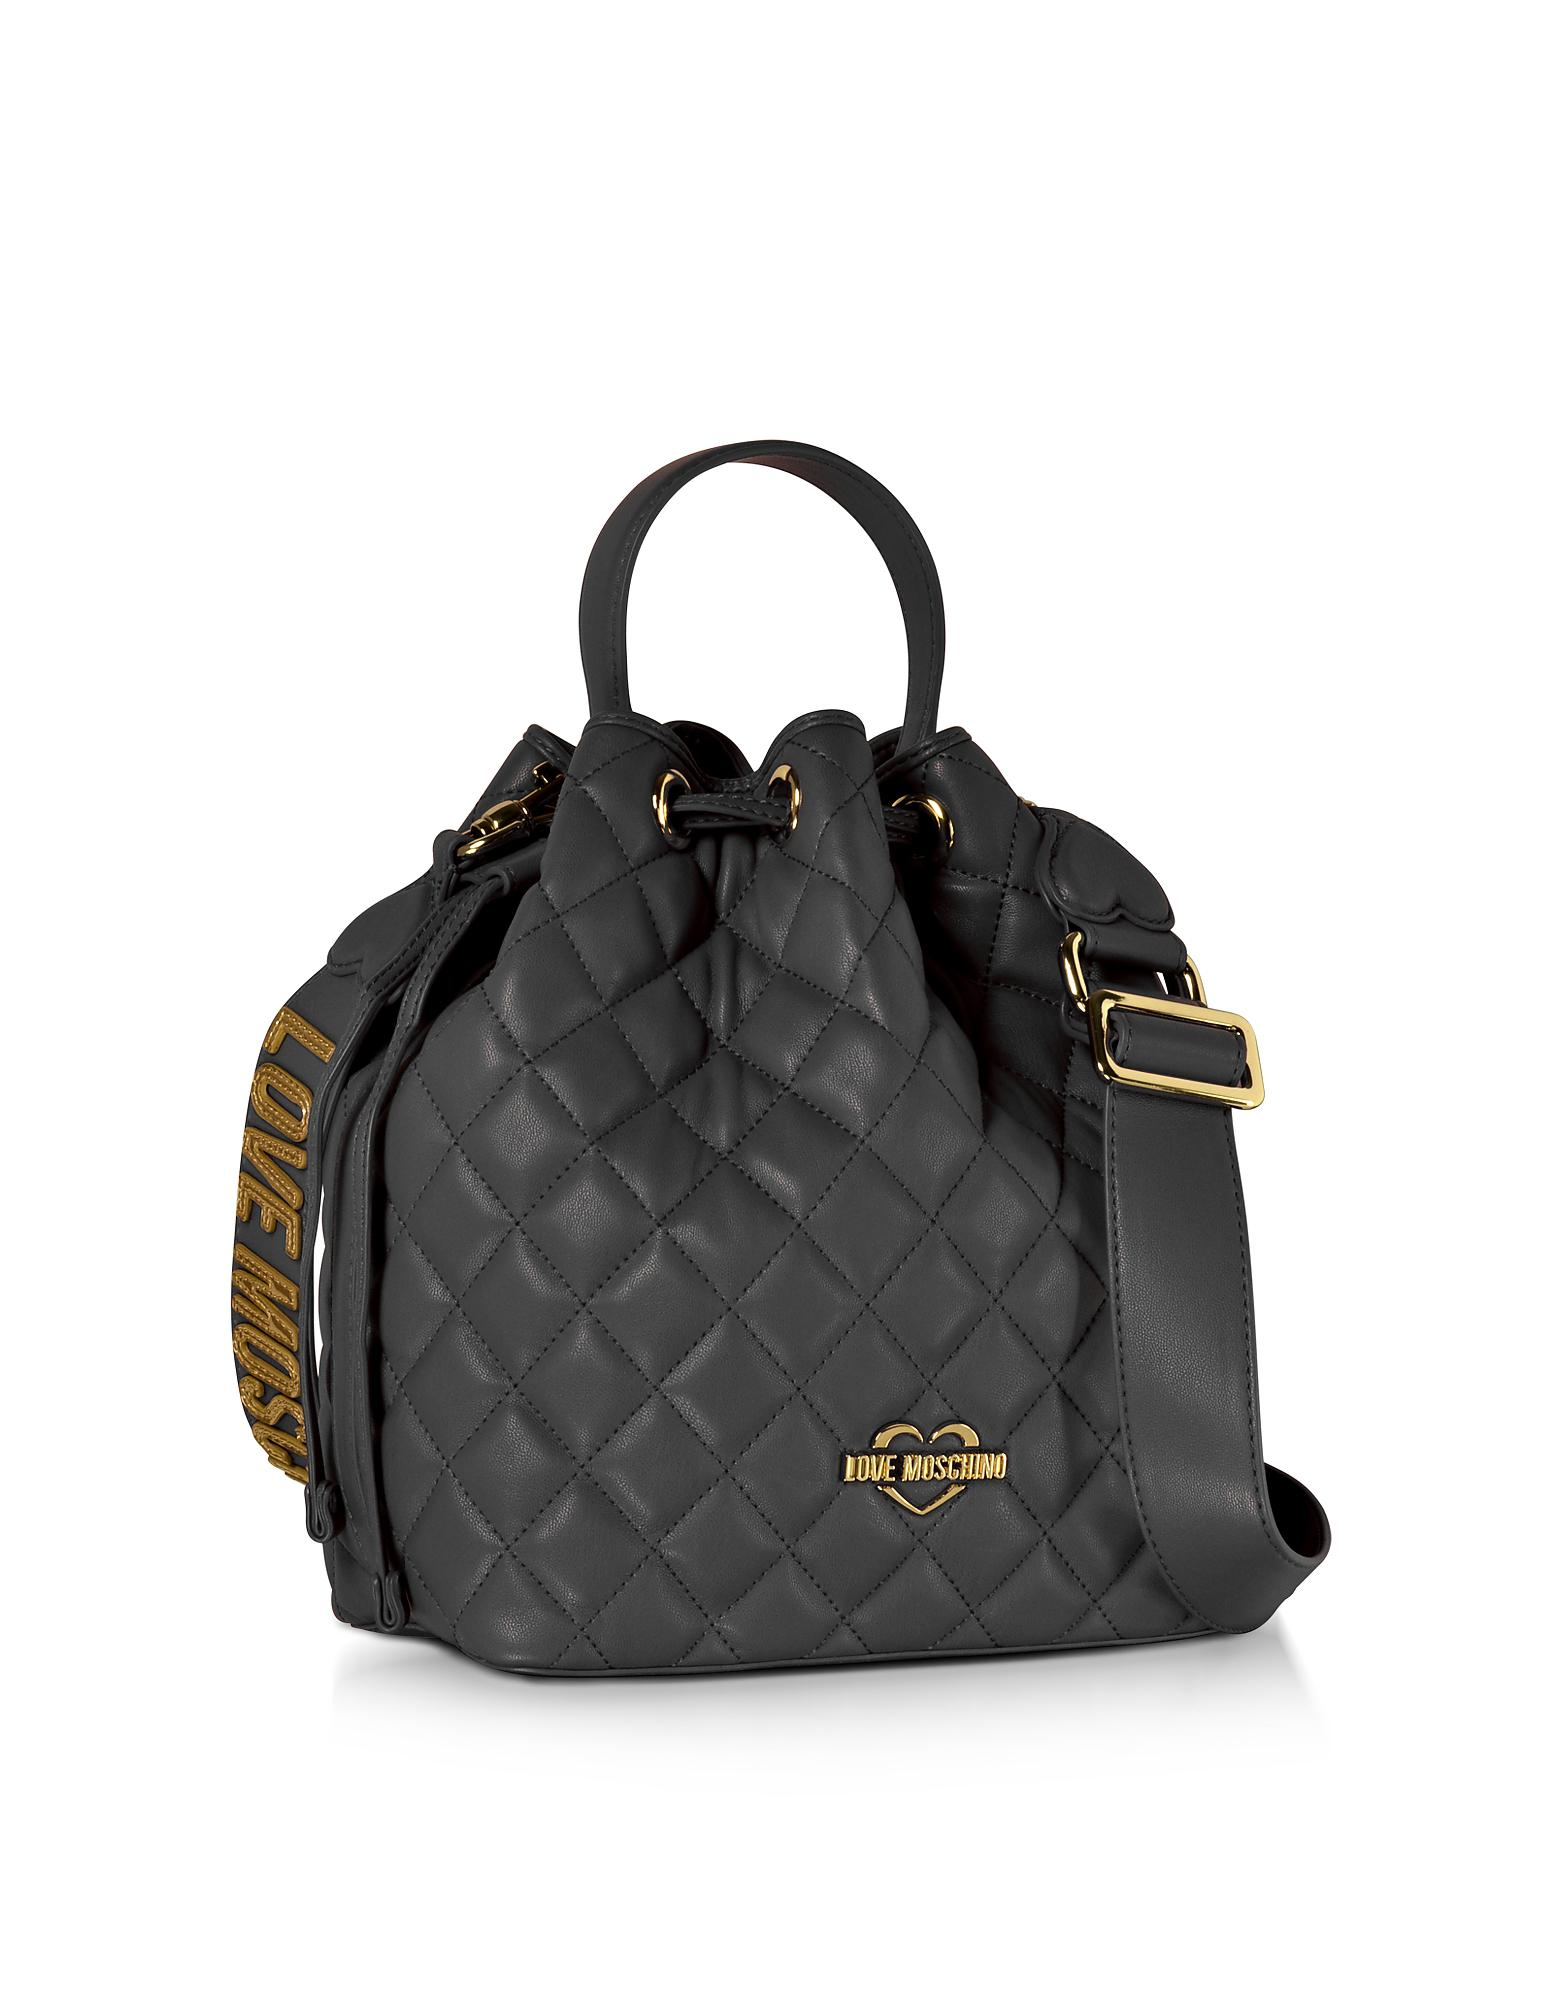 744d86dda4ce Lyst - Love Moschino Black Quilted Eco Leather Bucket Bag in Black